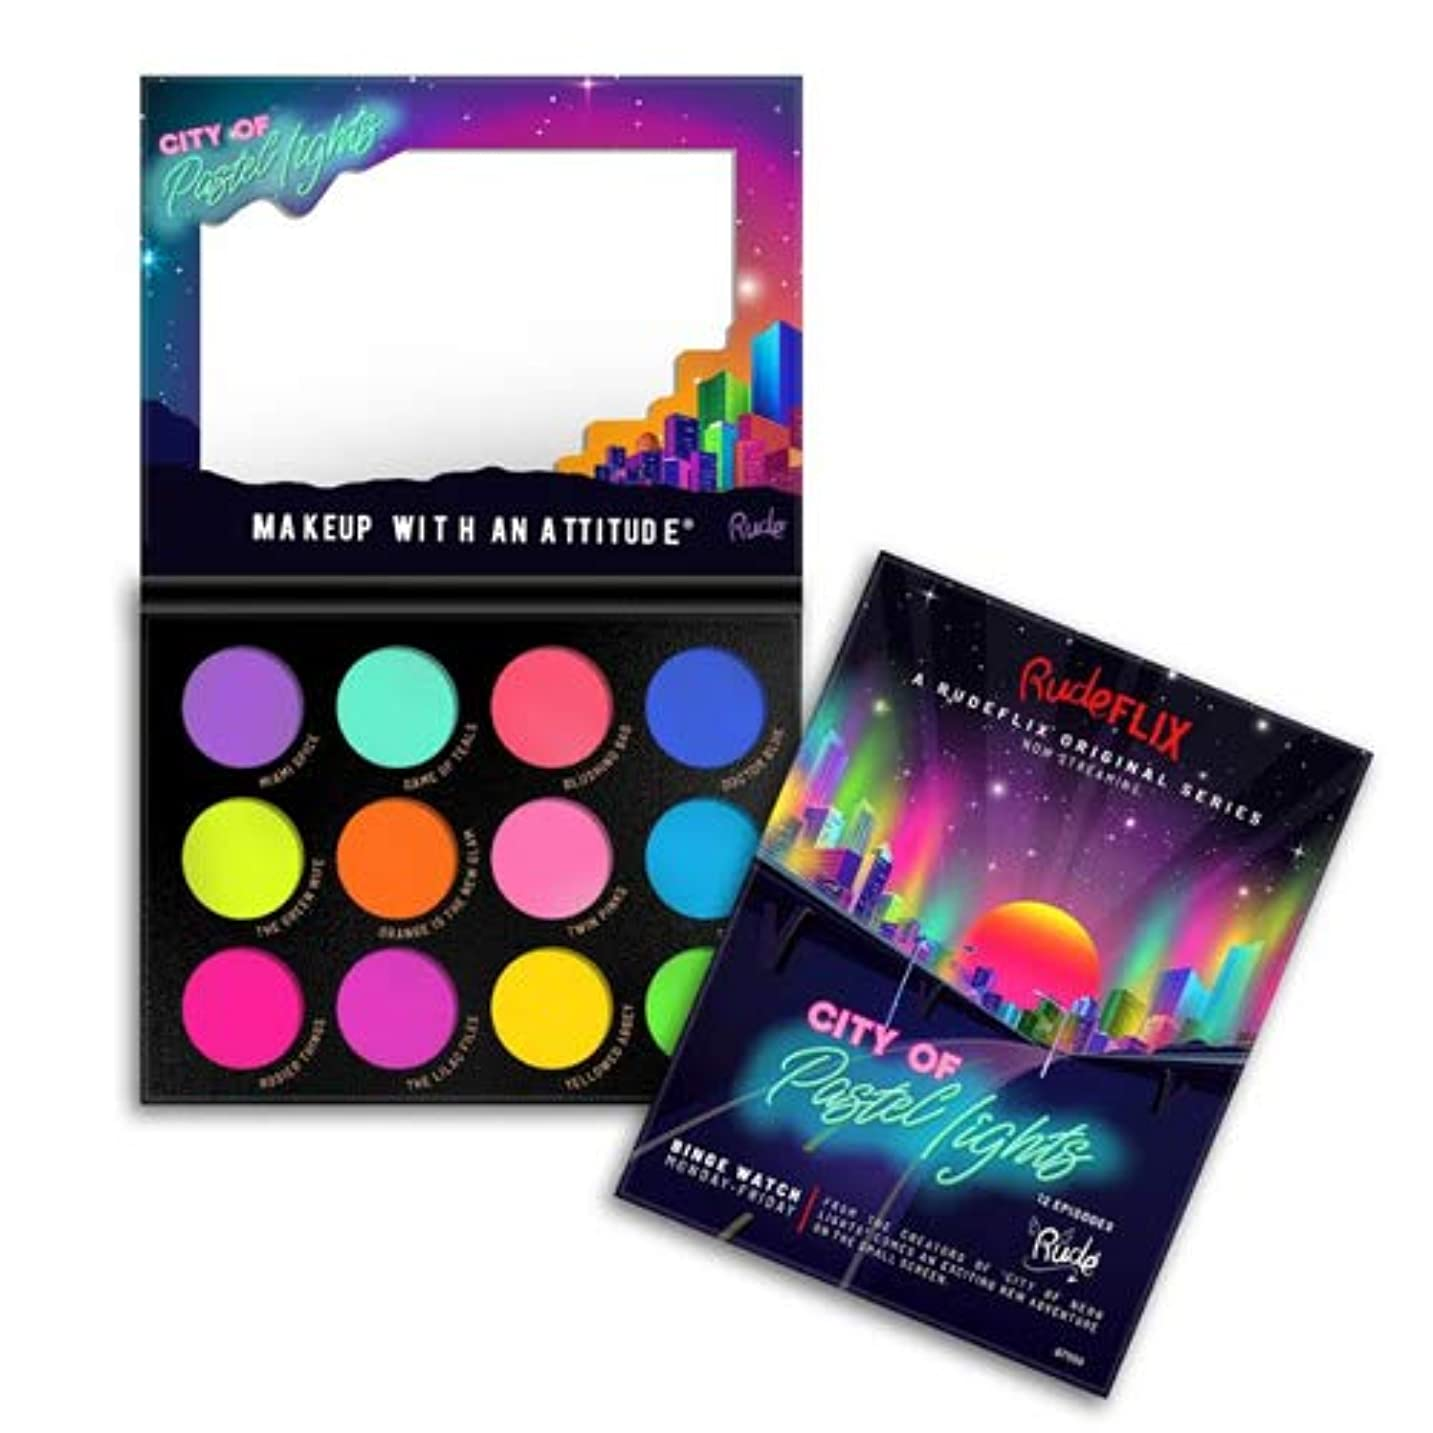 パケットエッセンスゆでるRUDE City of Pastel Lights - 12 Pastel Pigment & Eyeshadow Palette (3 Pack) (並行輸入品)